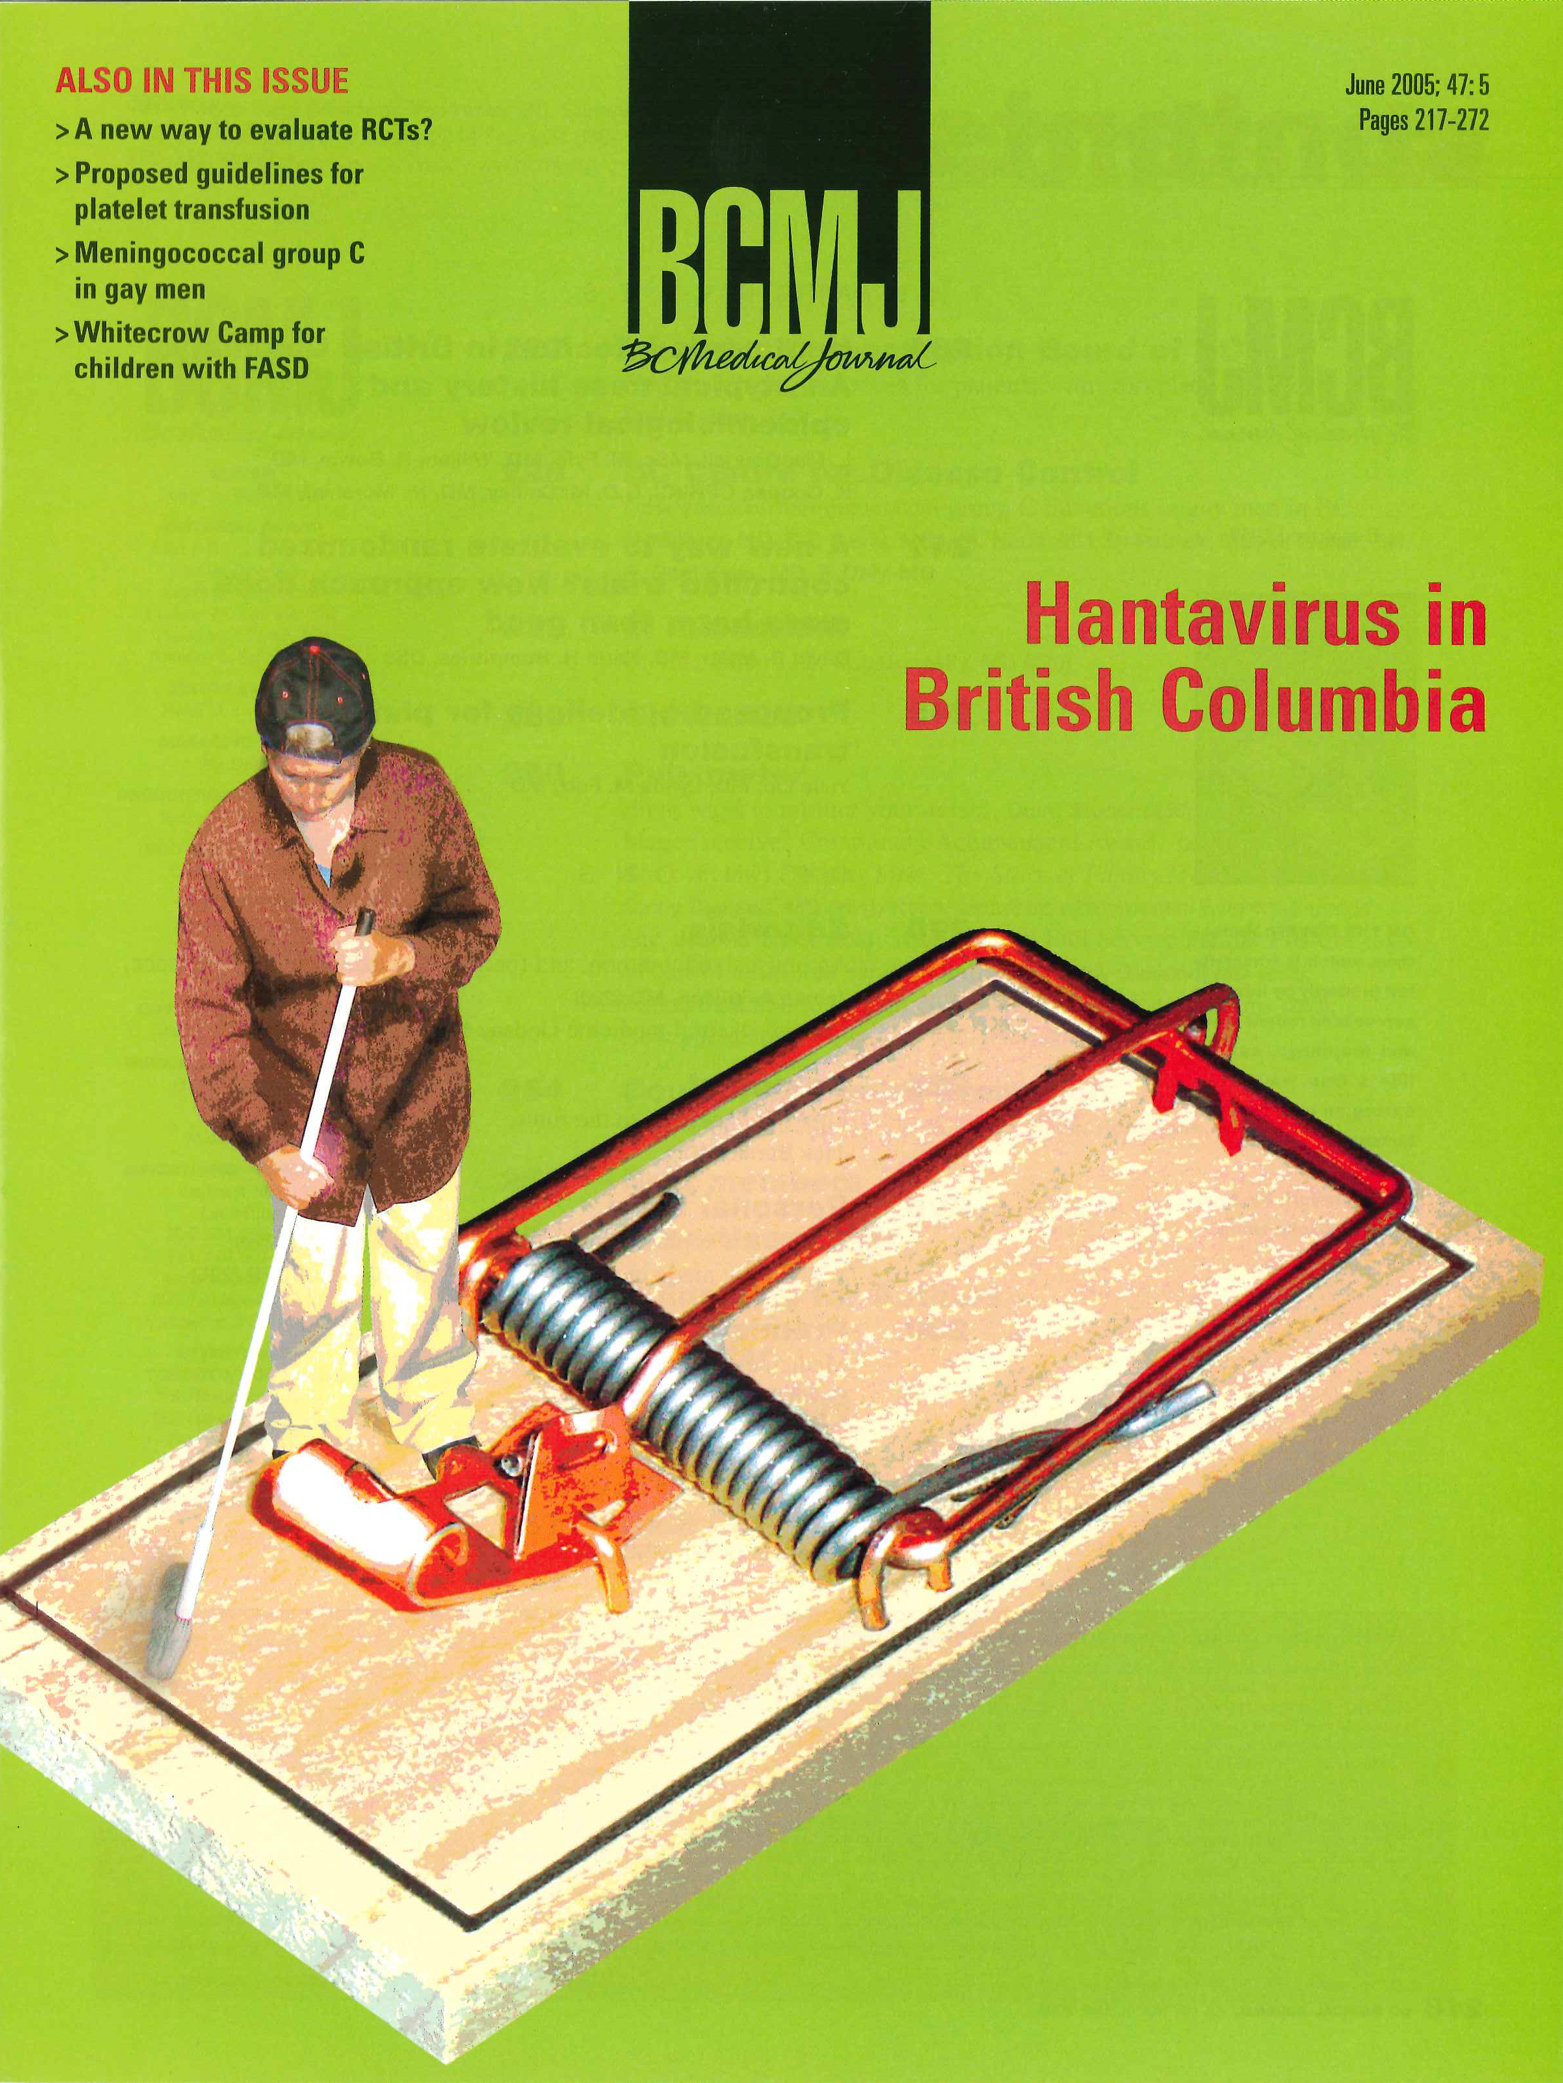 Hantavirus infection in British Columbia: An atypical case history ...